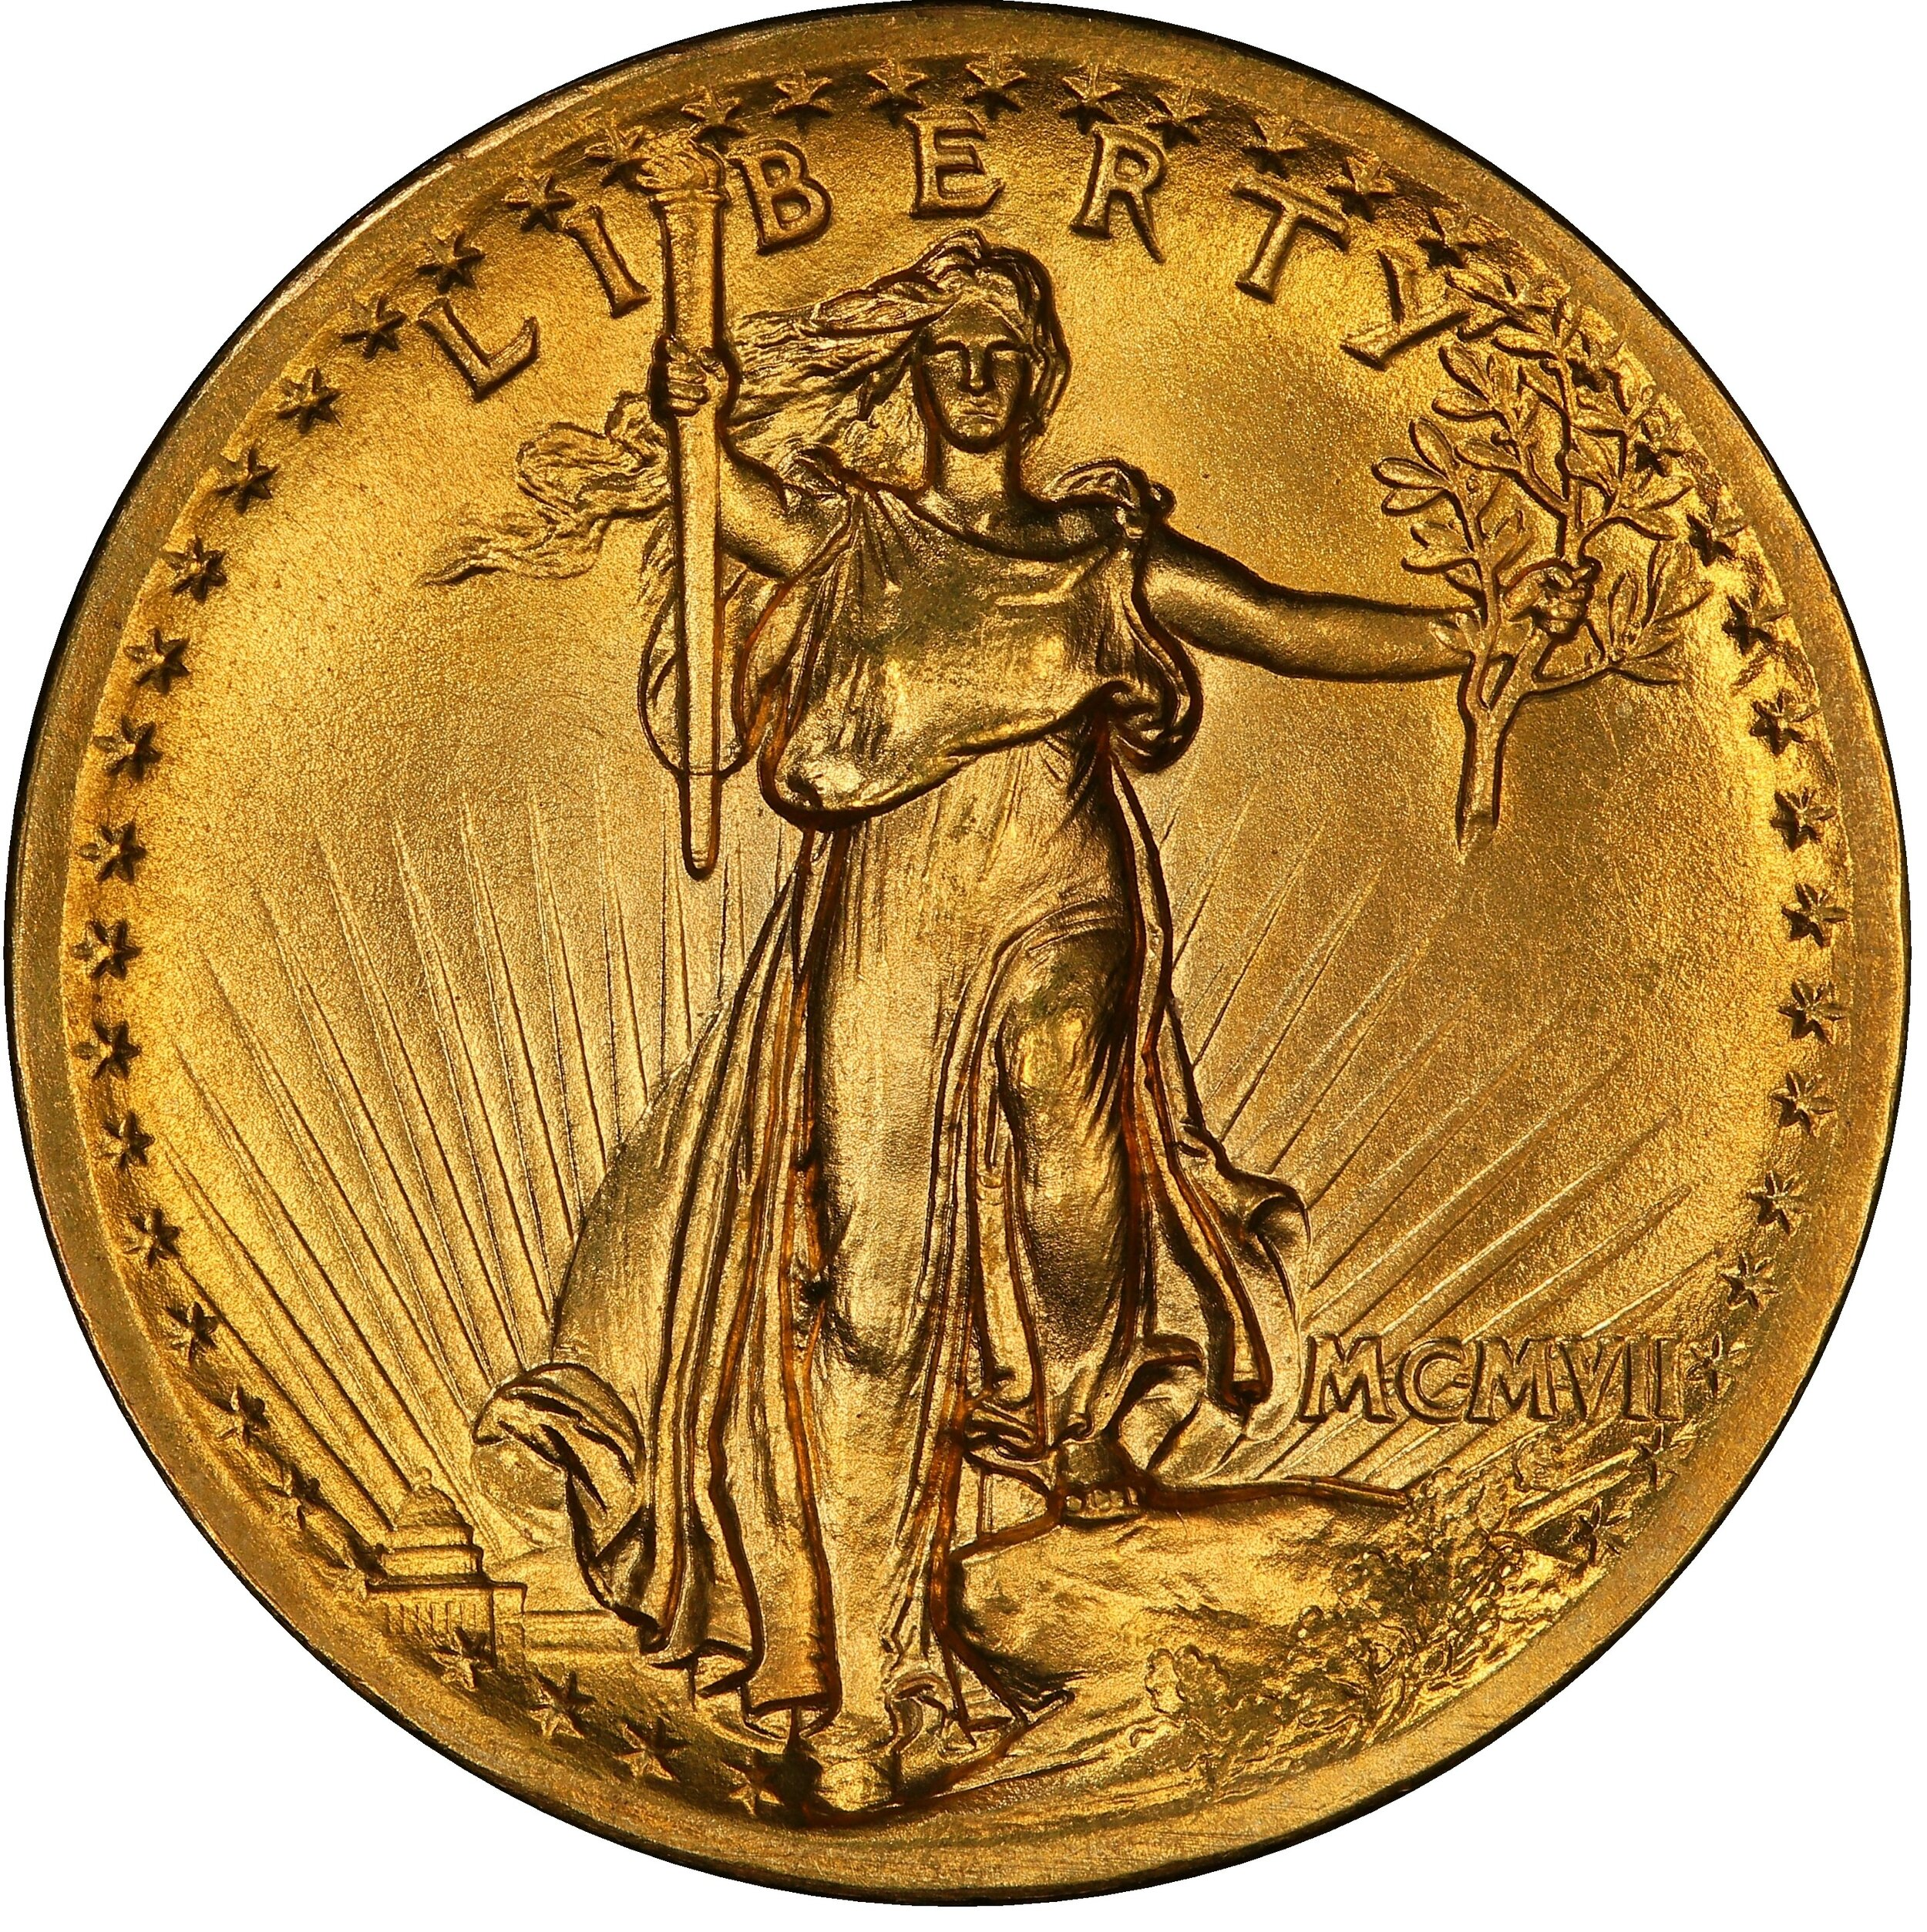 Browse our inventory of US Gold